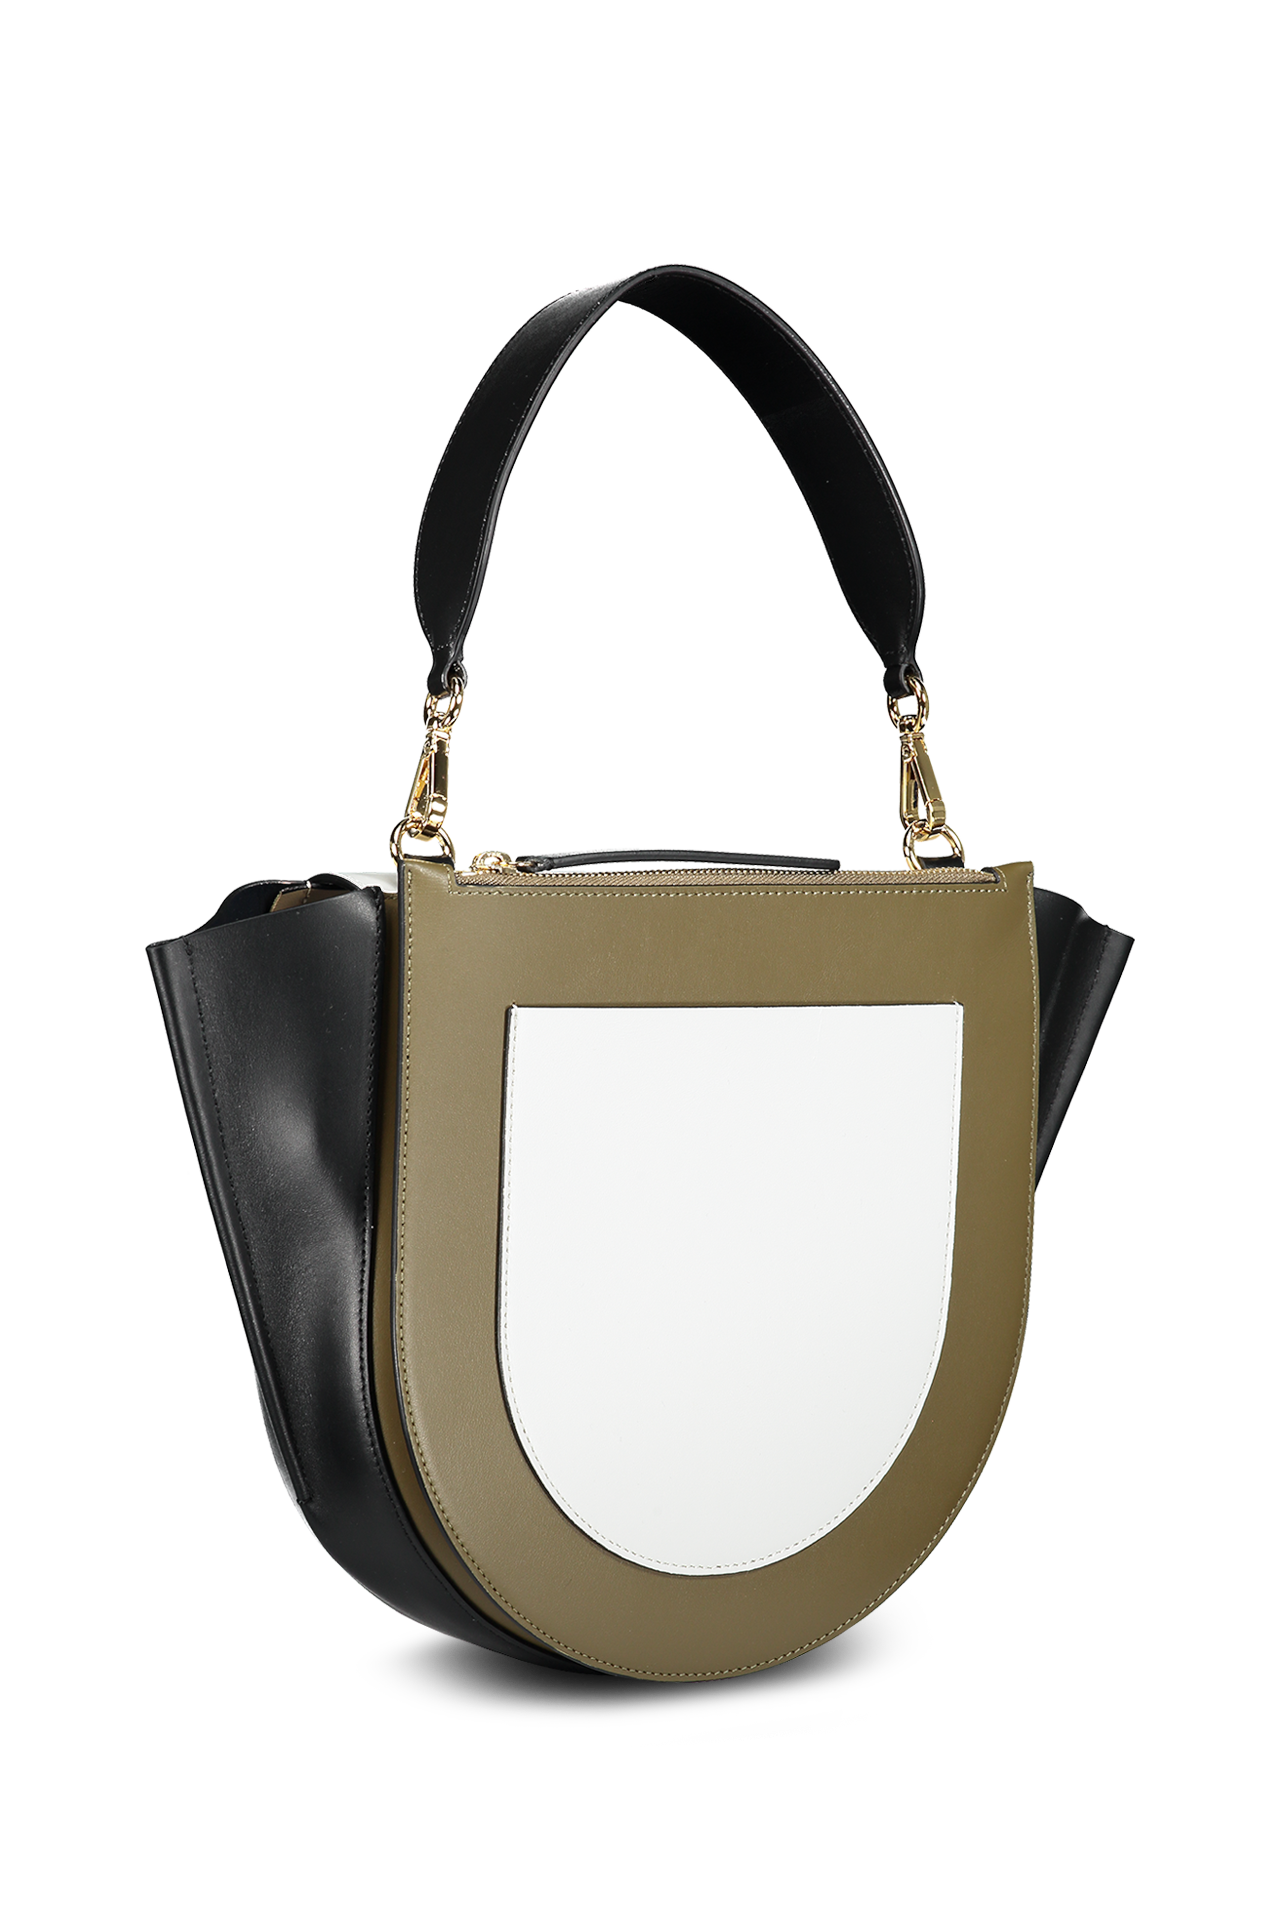 Back view with strap image of Wandler Hortensia Bag Medium Calf Leather Kombo Shades